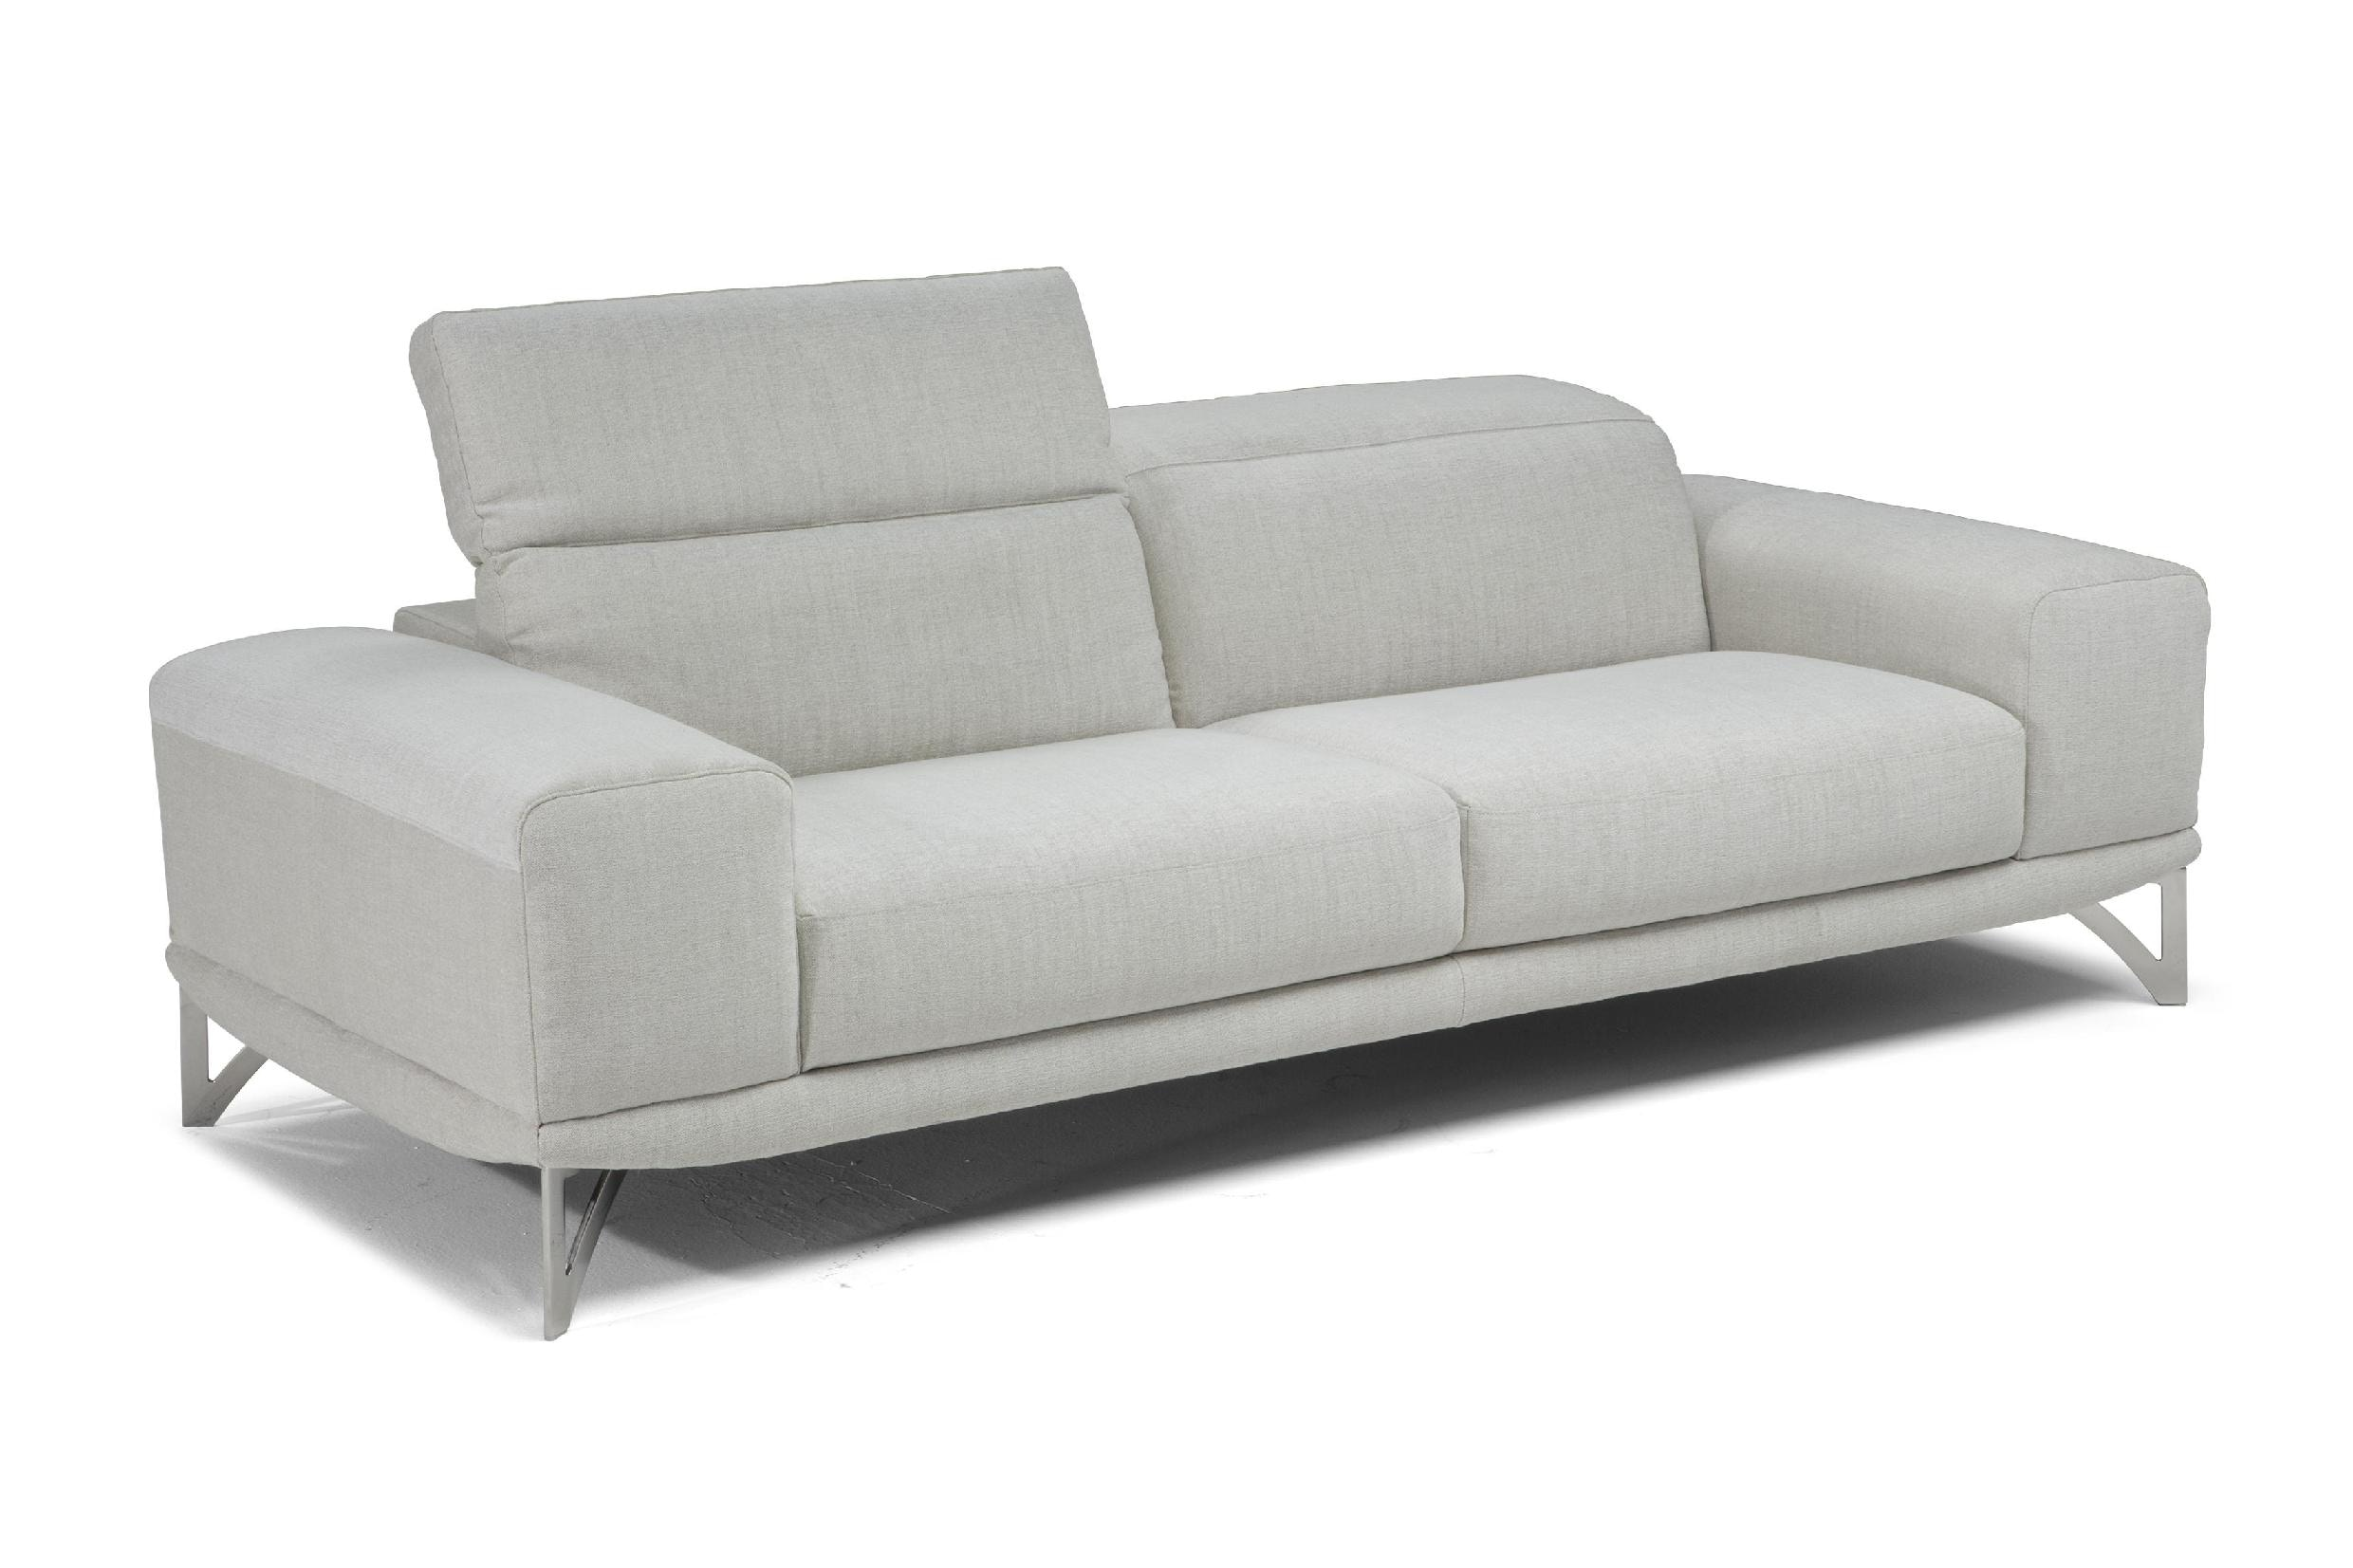 Natuzzi Editions B983  sc 1 st  Home Inspirations Thomasville : natuzzi chaise lounge - Sectionals, Sofas & Couches